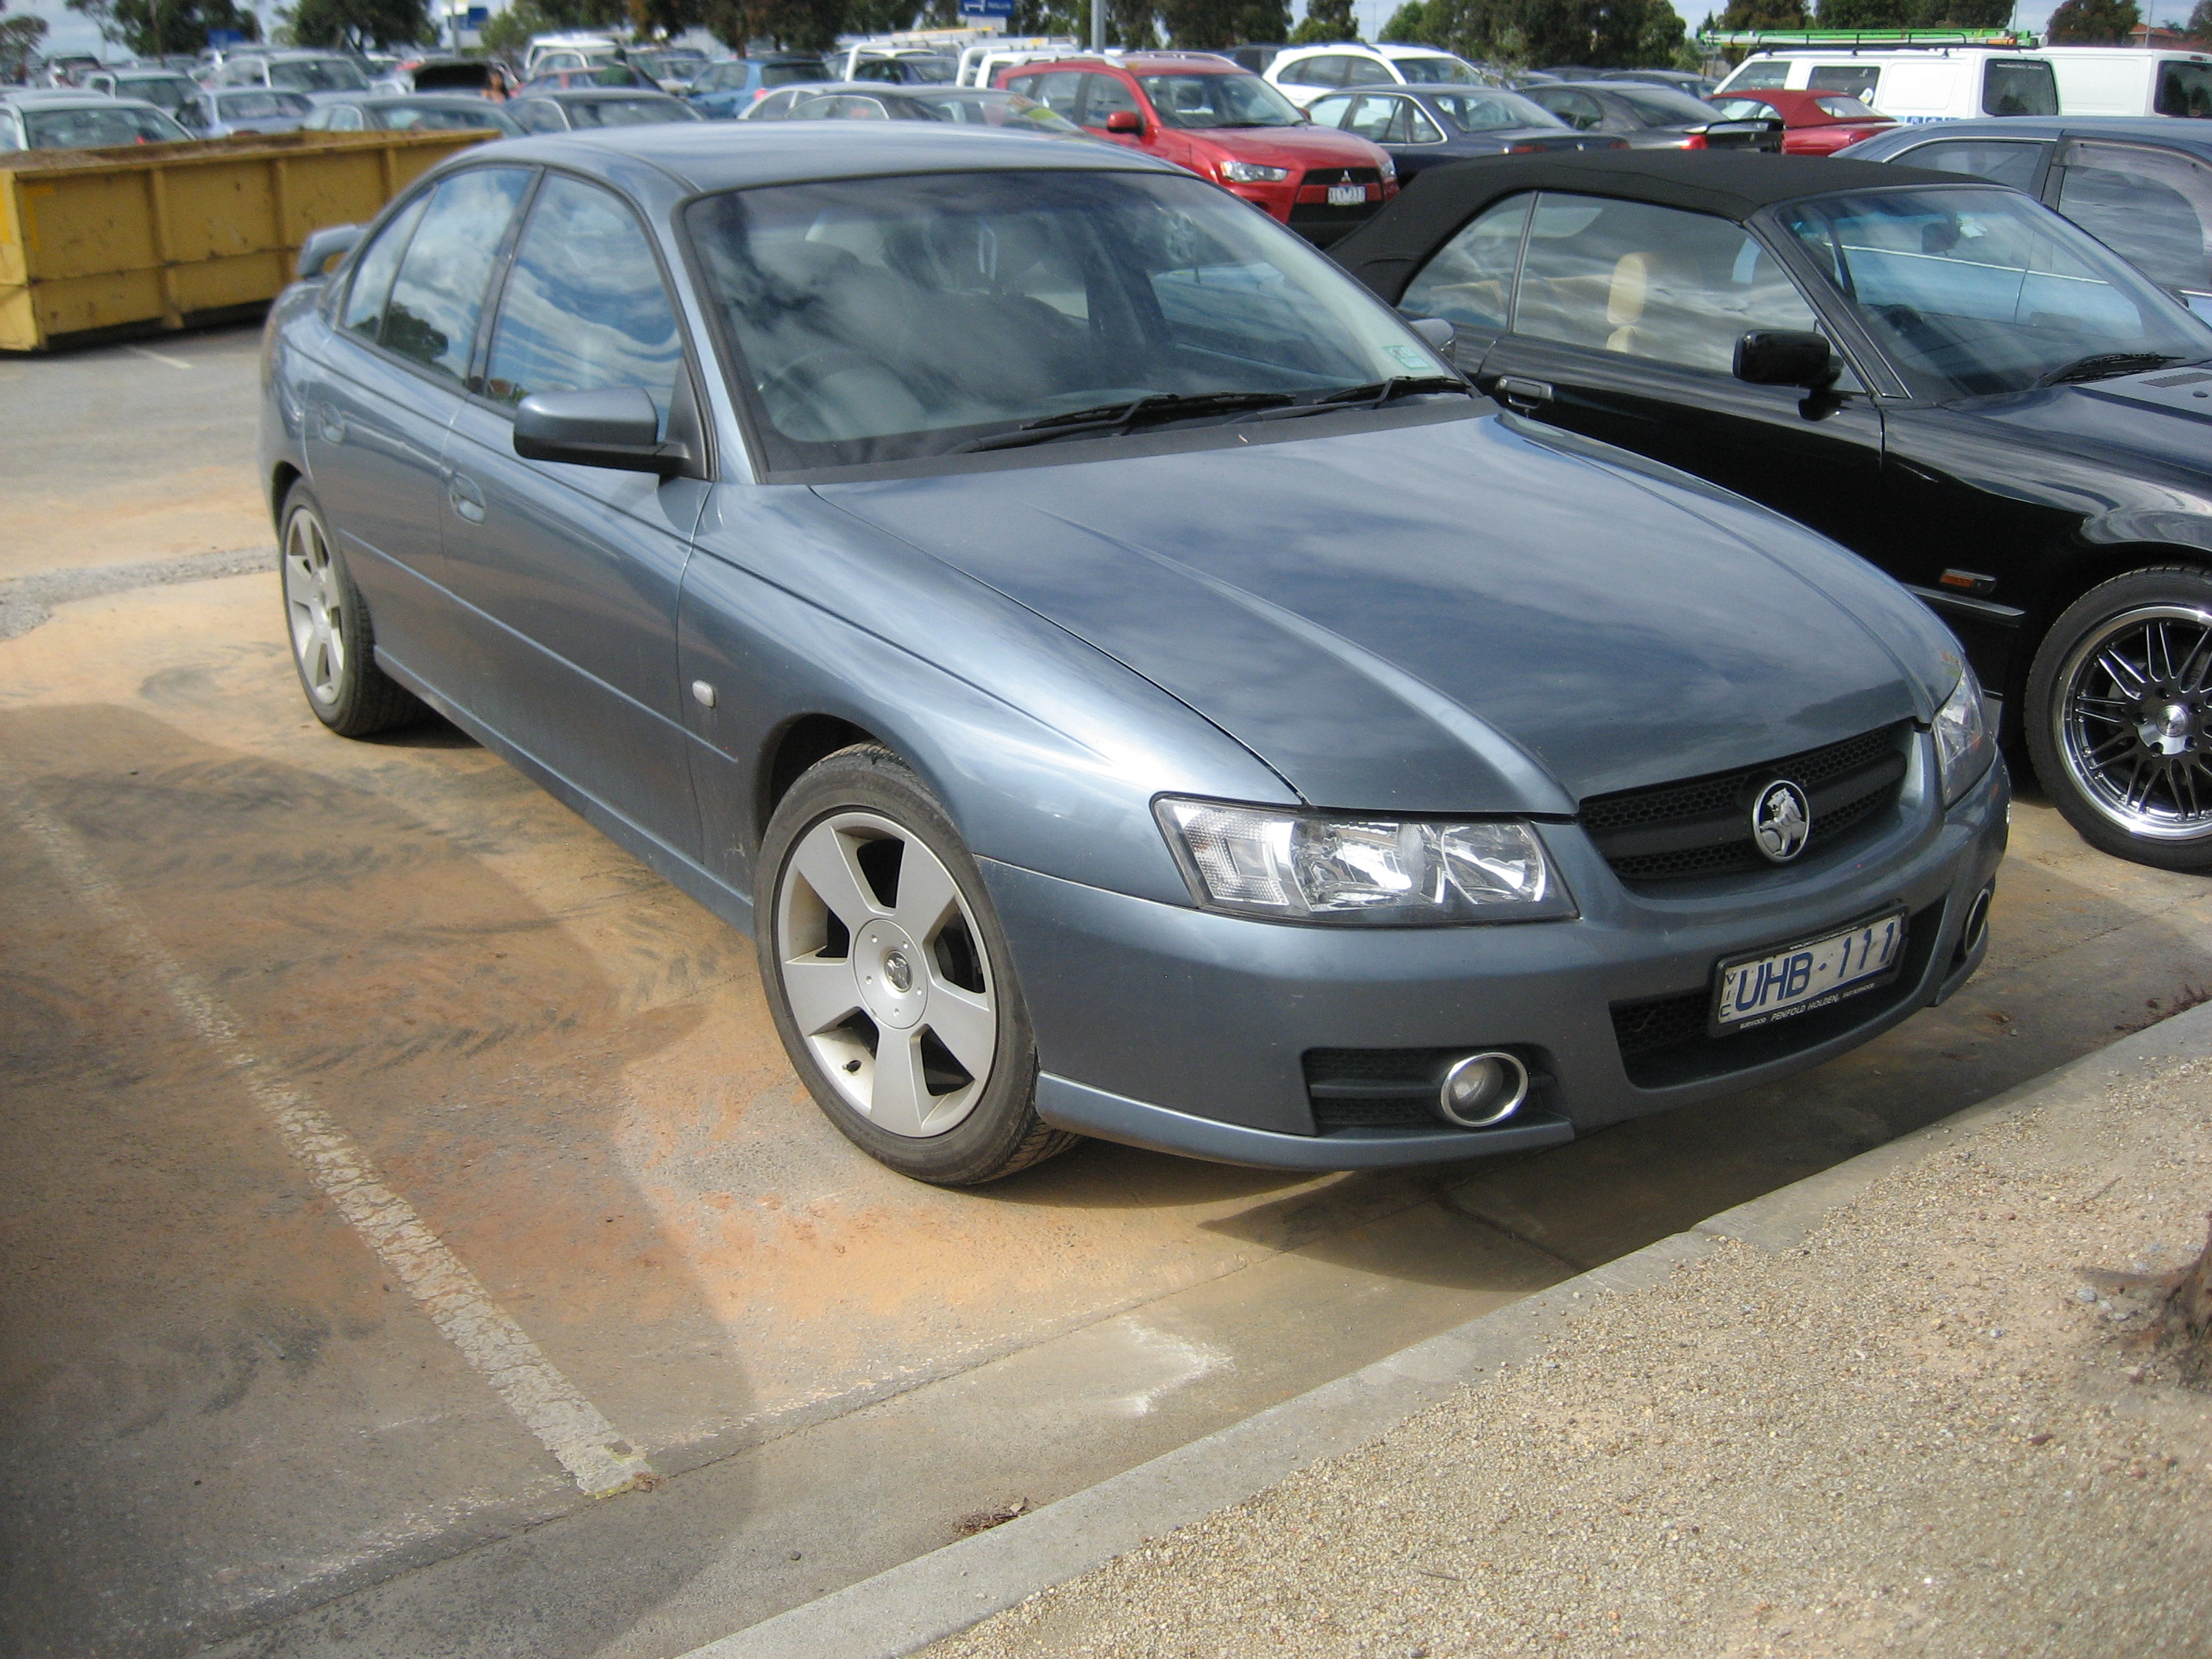 holden caprice (vh) 2005 images #12